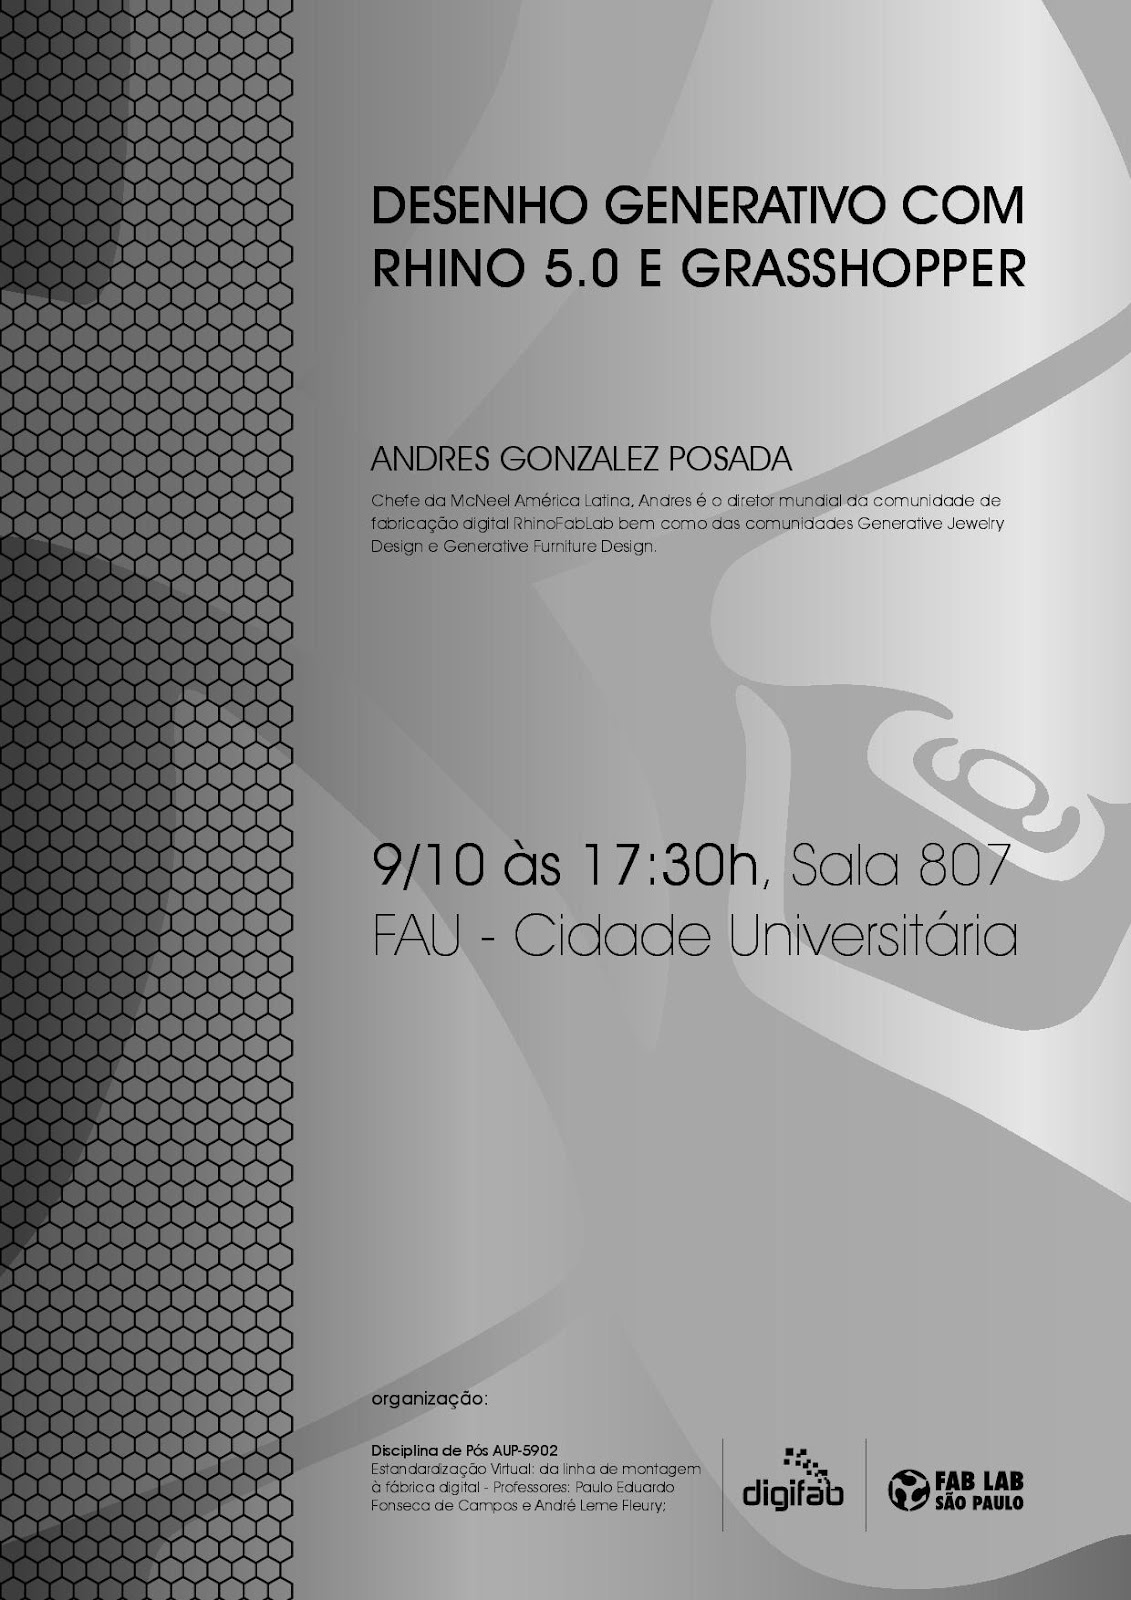 Rhinoceros 50 x64 vray materials torrent gold | CRACK